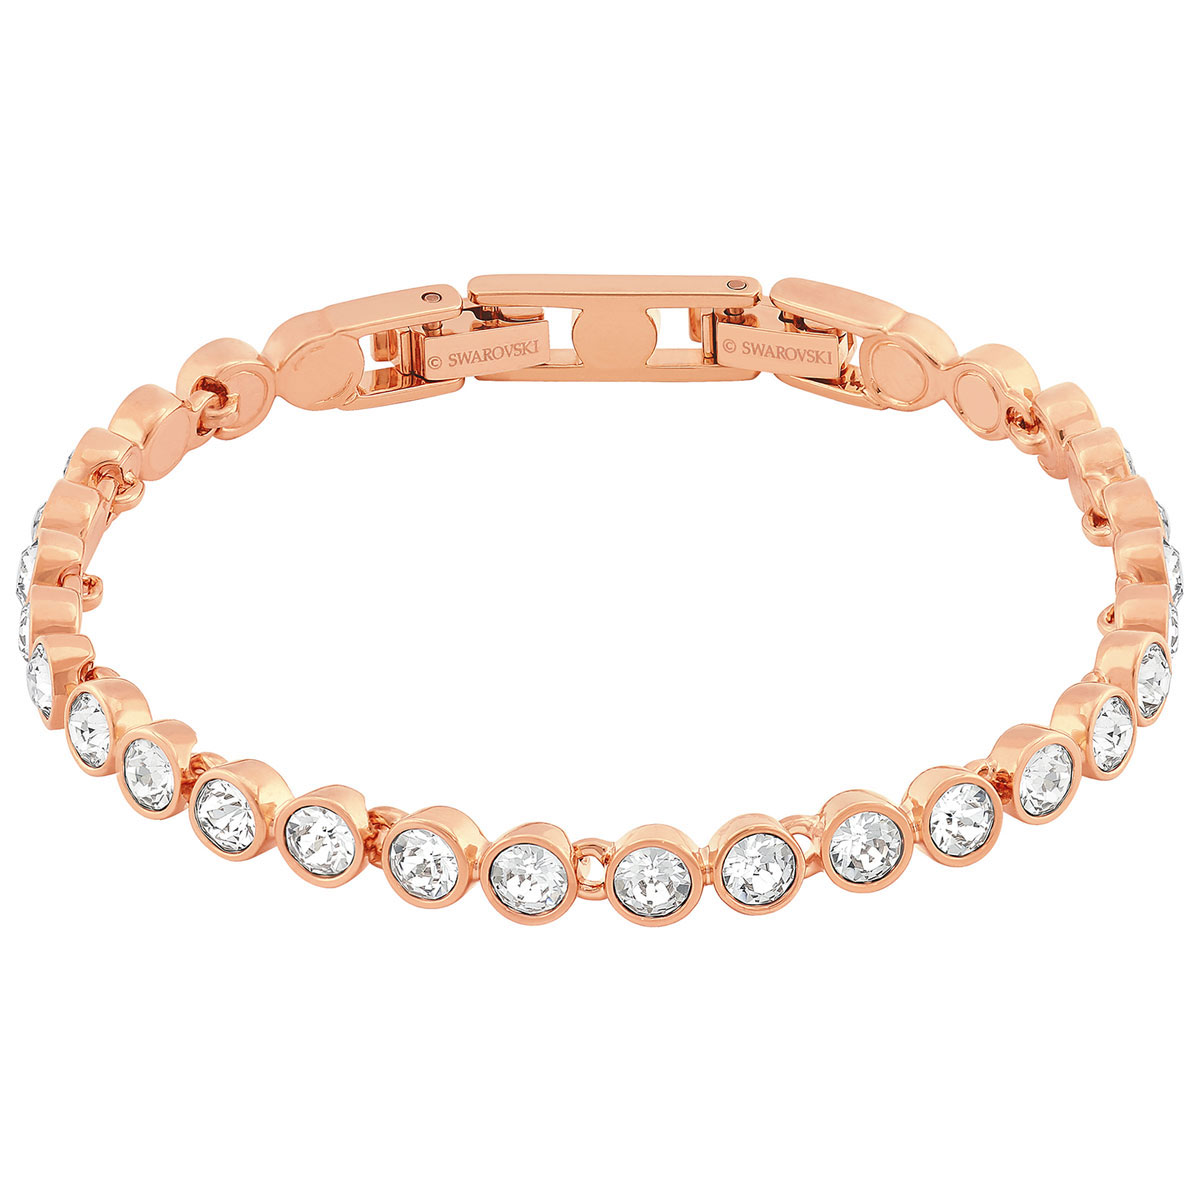 Swarovski Tennis Bracelet, White, Rose Gold